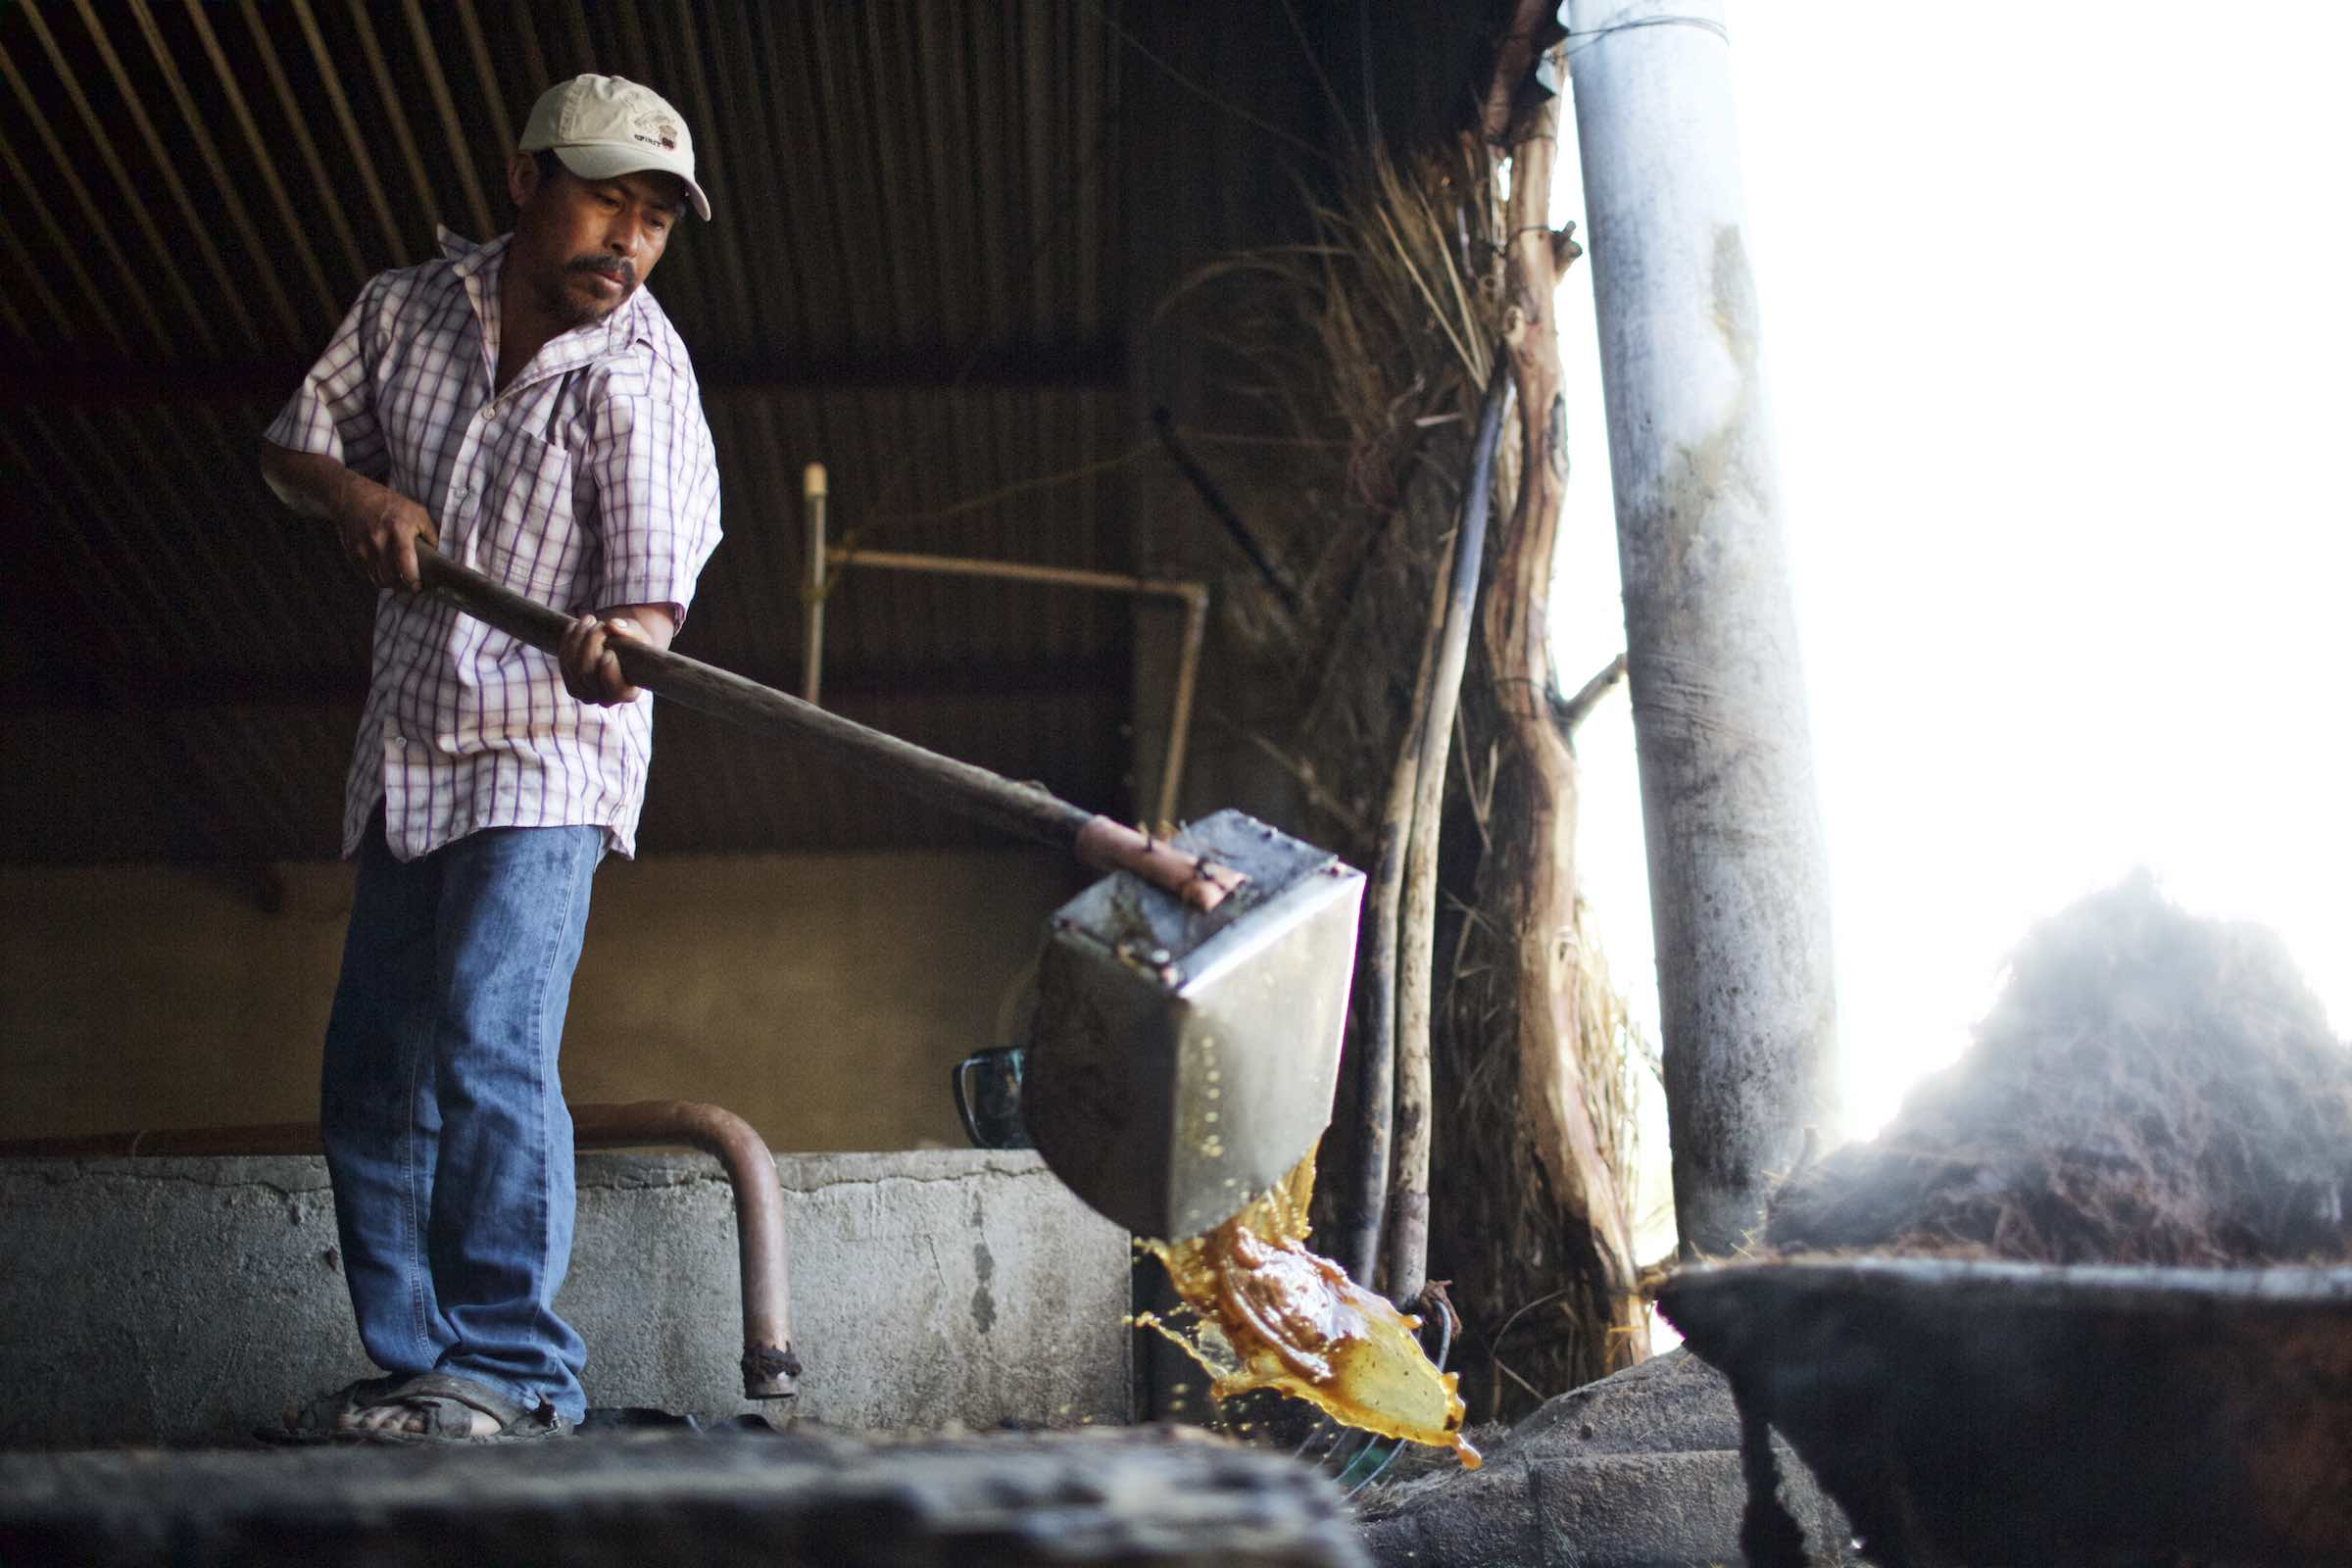 Farmer dumping liquid during production.